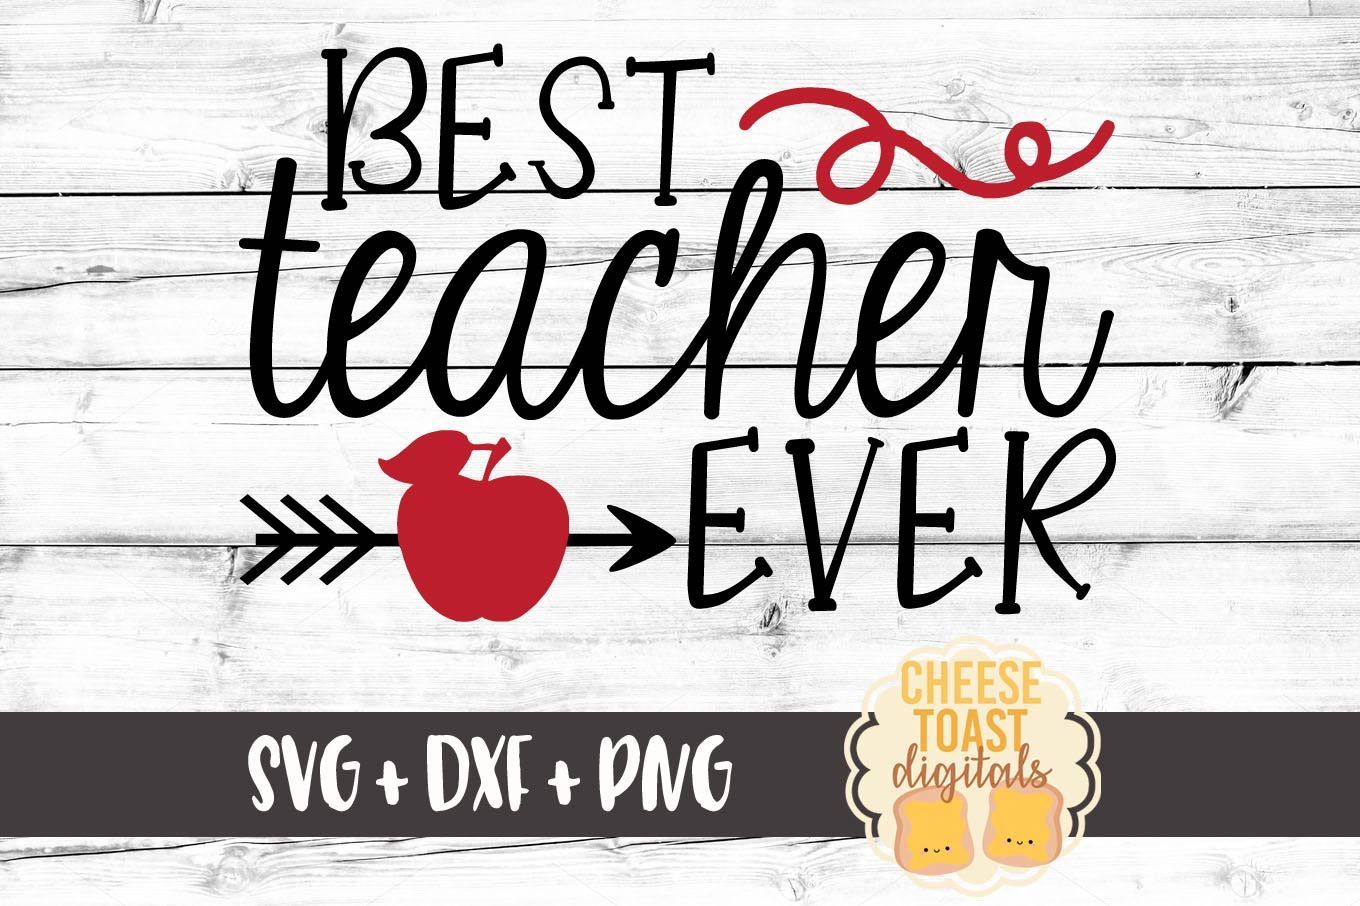 Best Teacher Ever School SVG File (Graphic) by